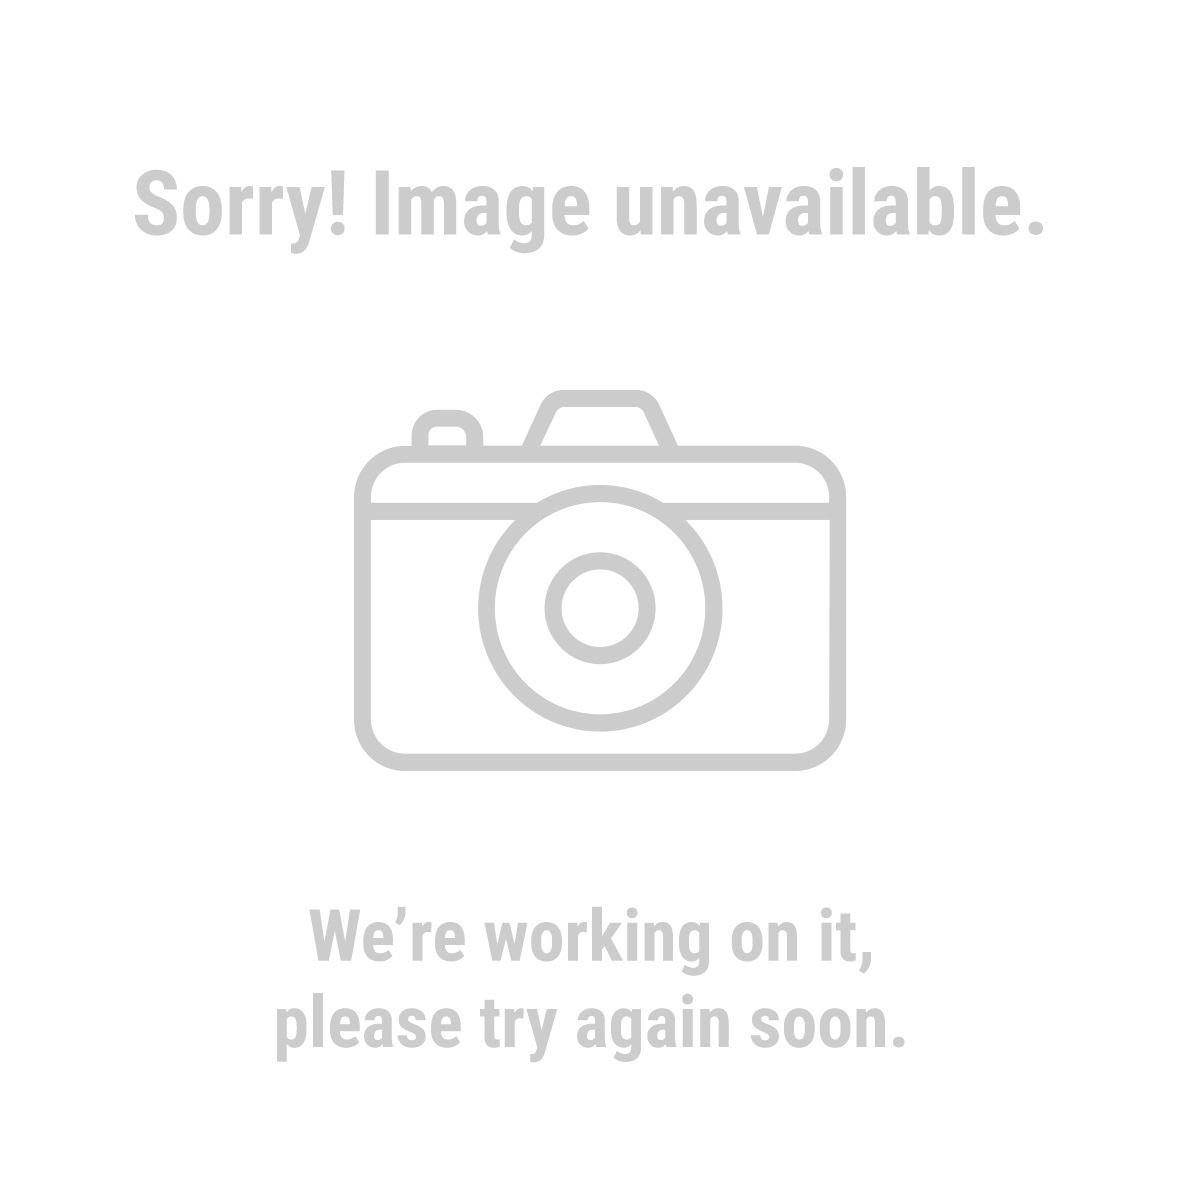 Central Pneumatic 68149 1.5 Horsepower, 6 Gallon, 150 PSI Professional Oilless Air Compressor